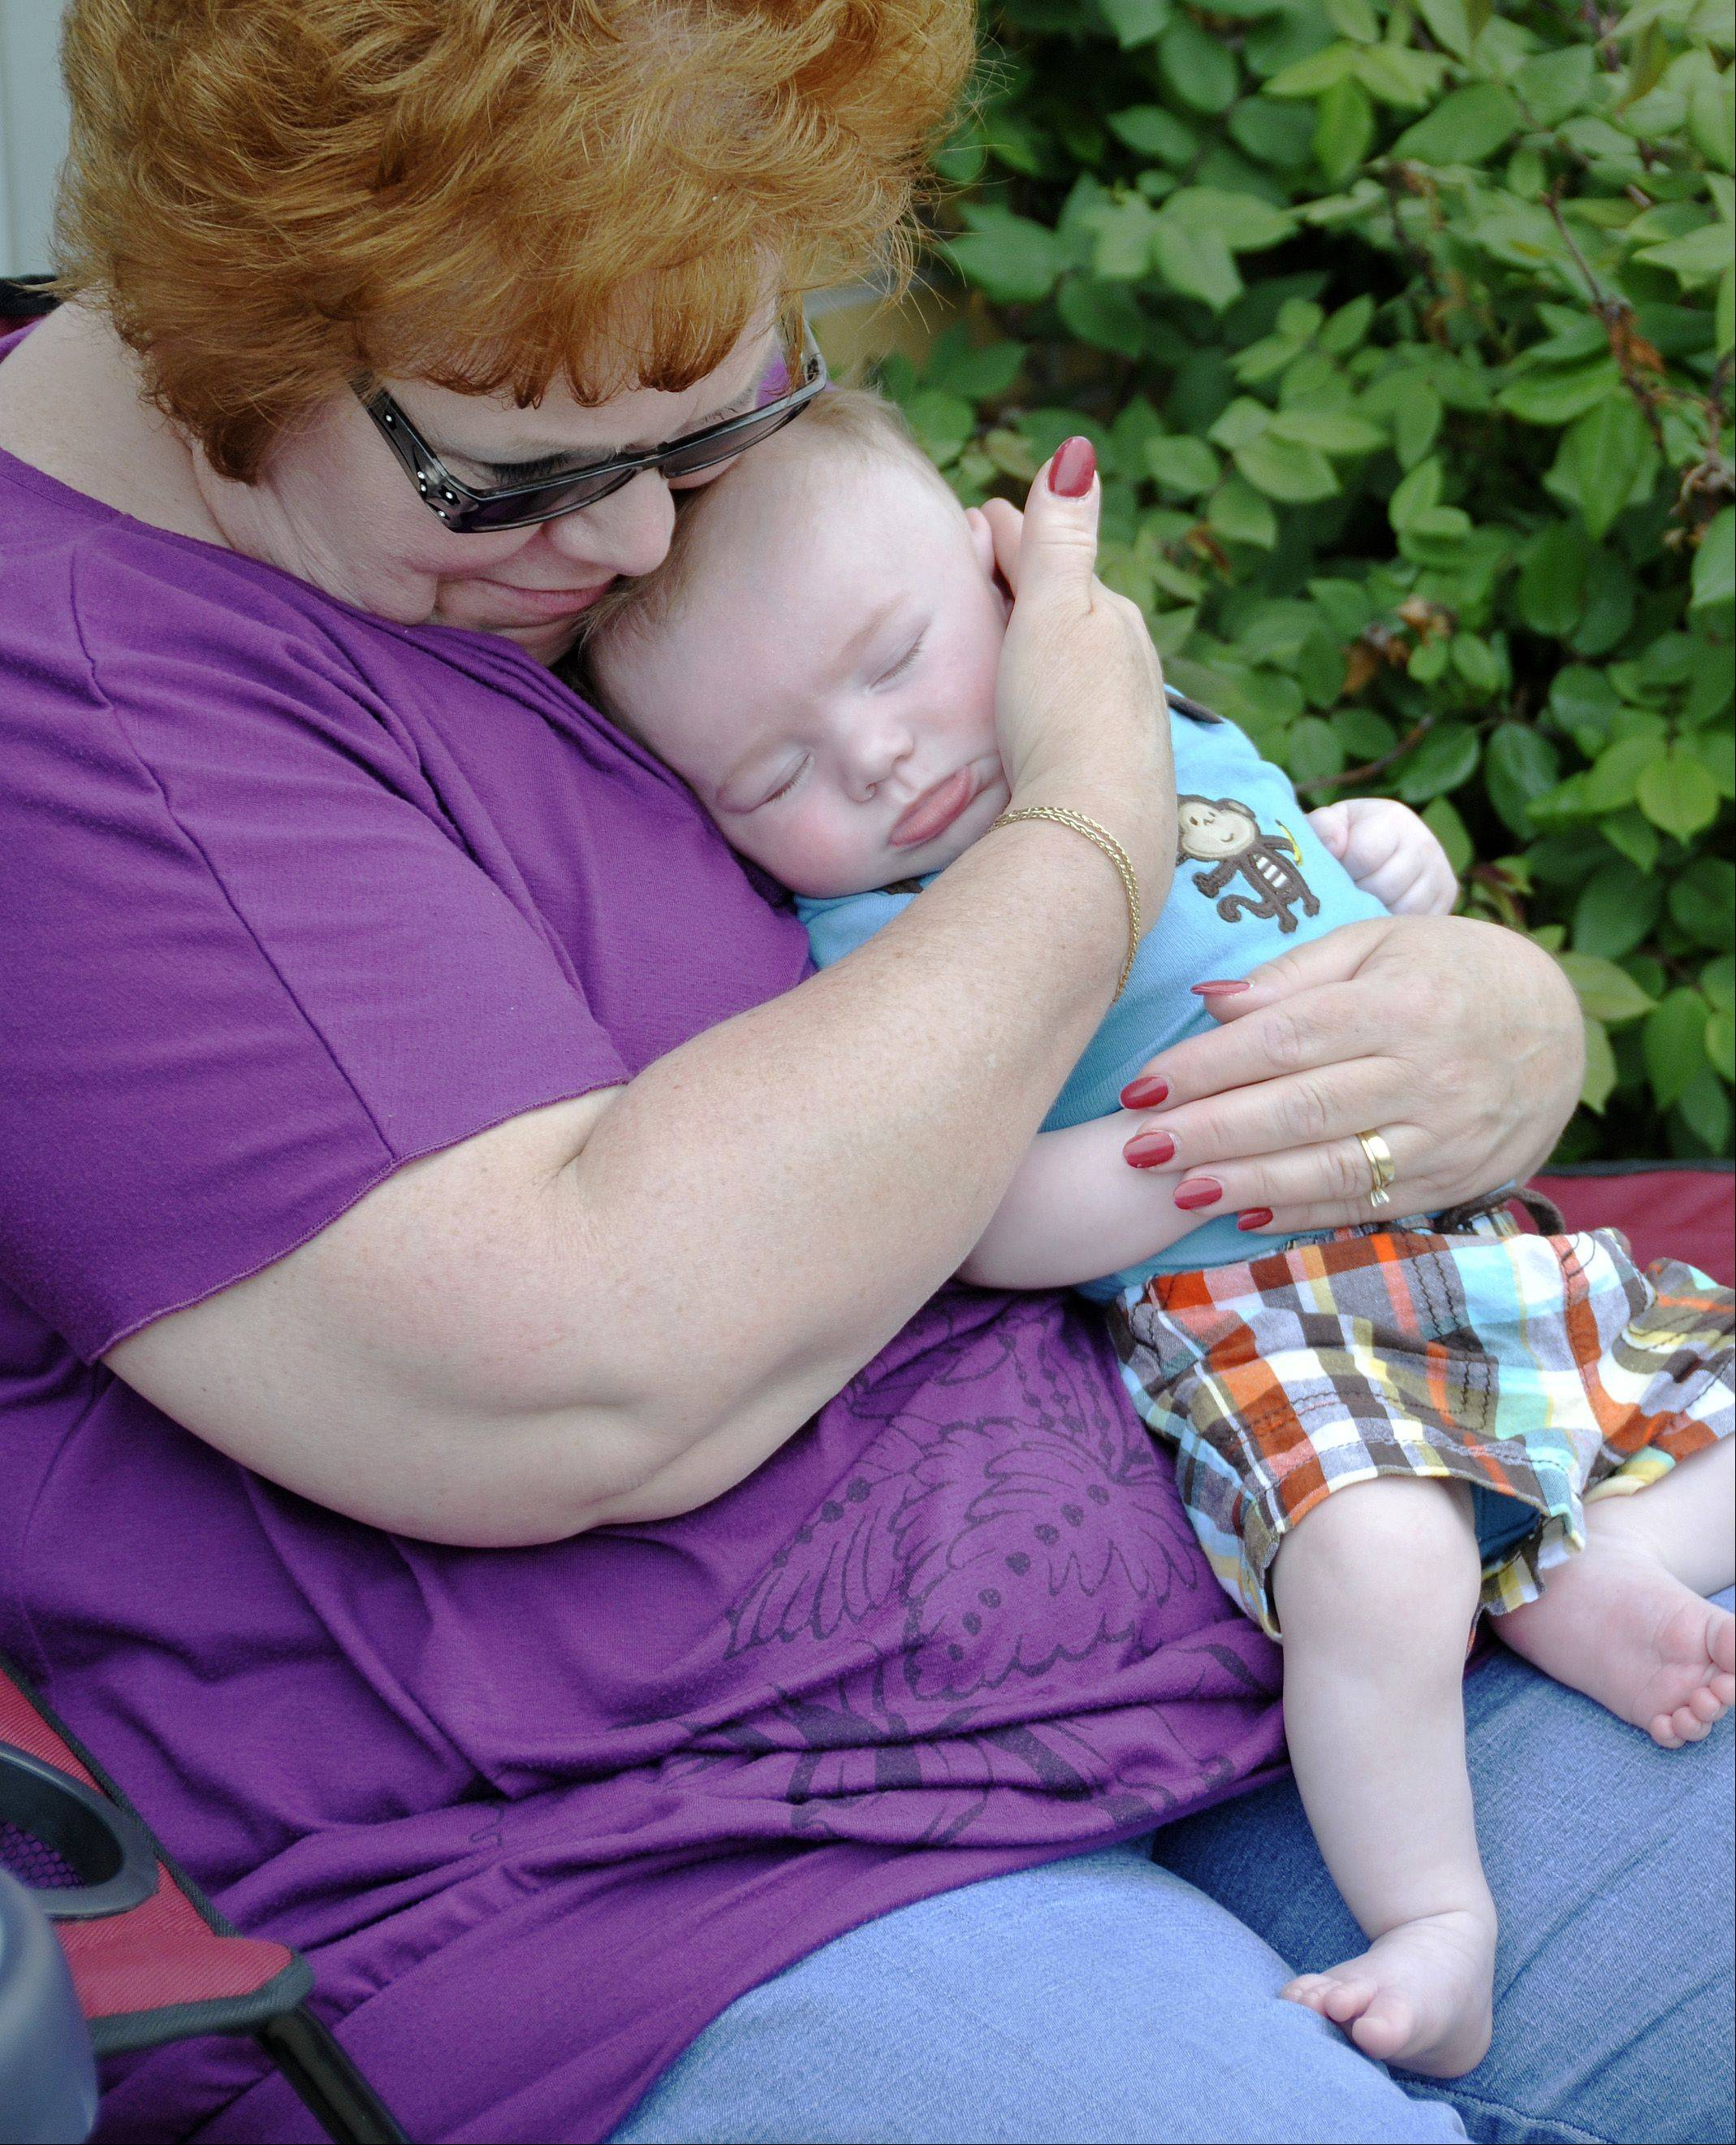 The 59th annual Lilac Parade stepped off Sunday on Main Street in Lombard. Three-month-old Brady Carbon, of Lombard, had enough excitement after the fire trucks went by and fell asleep on his grandmother Denise Smelter's lap.